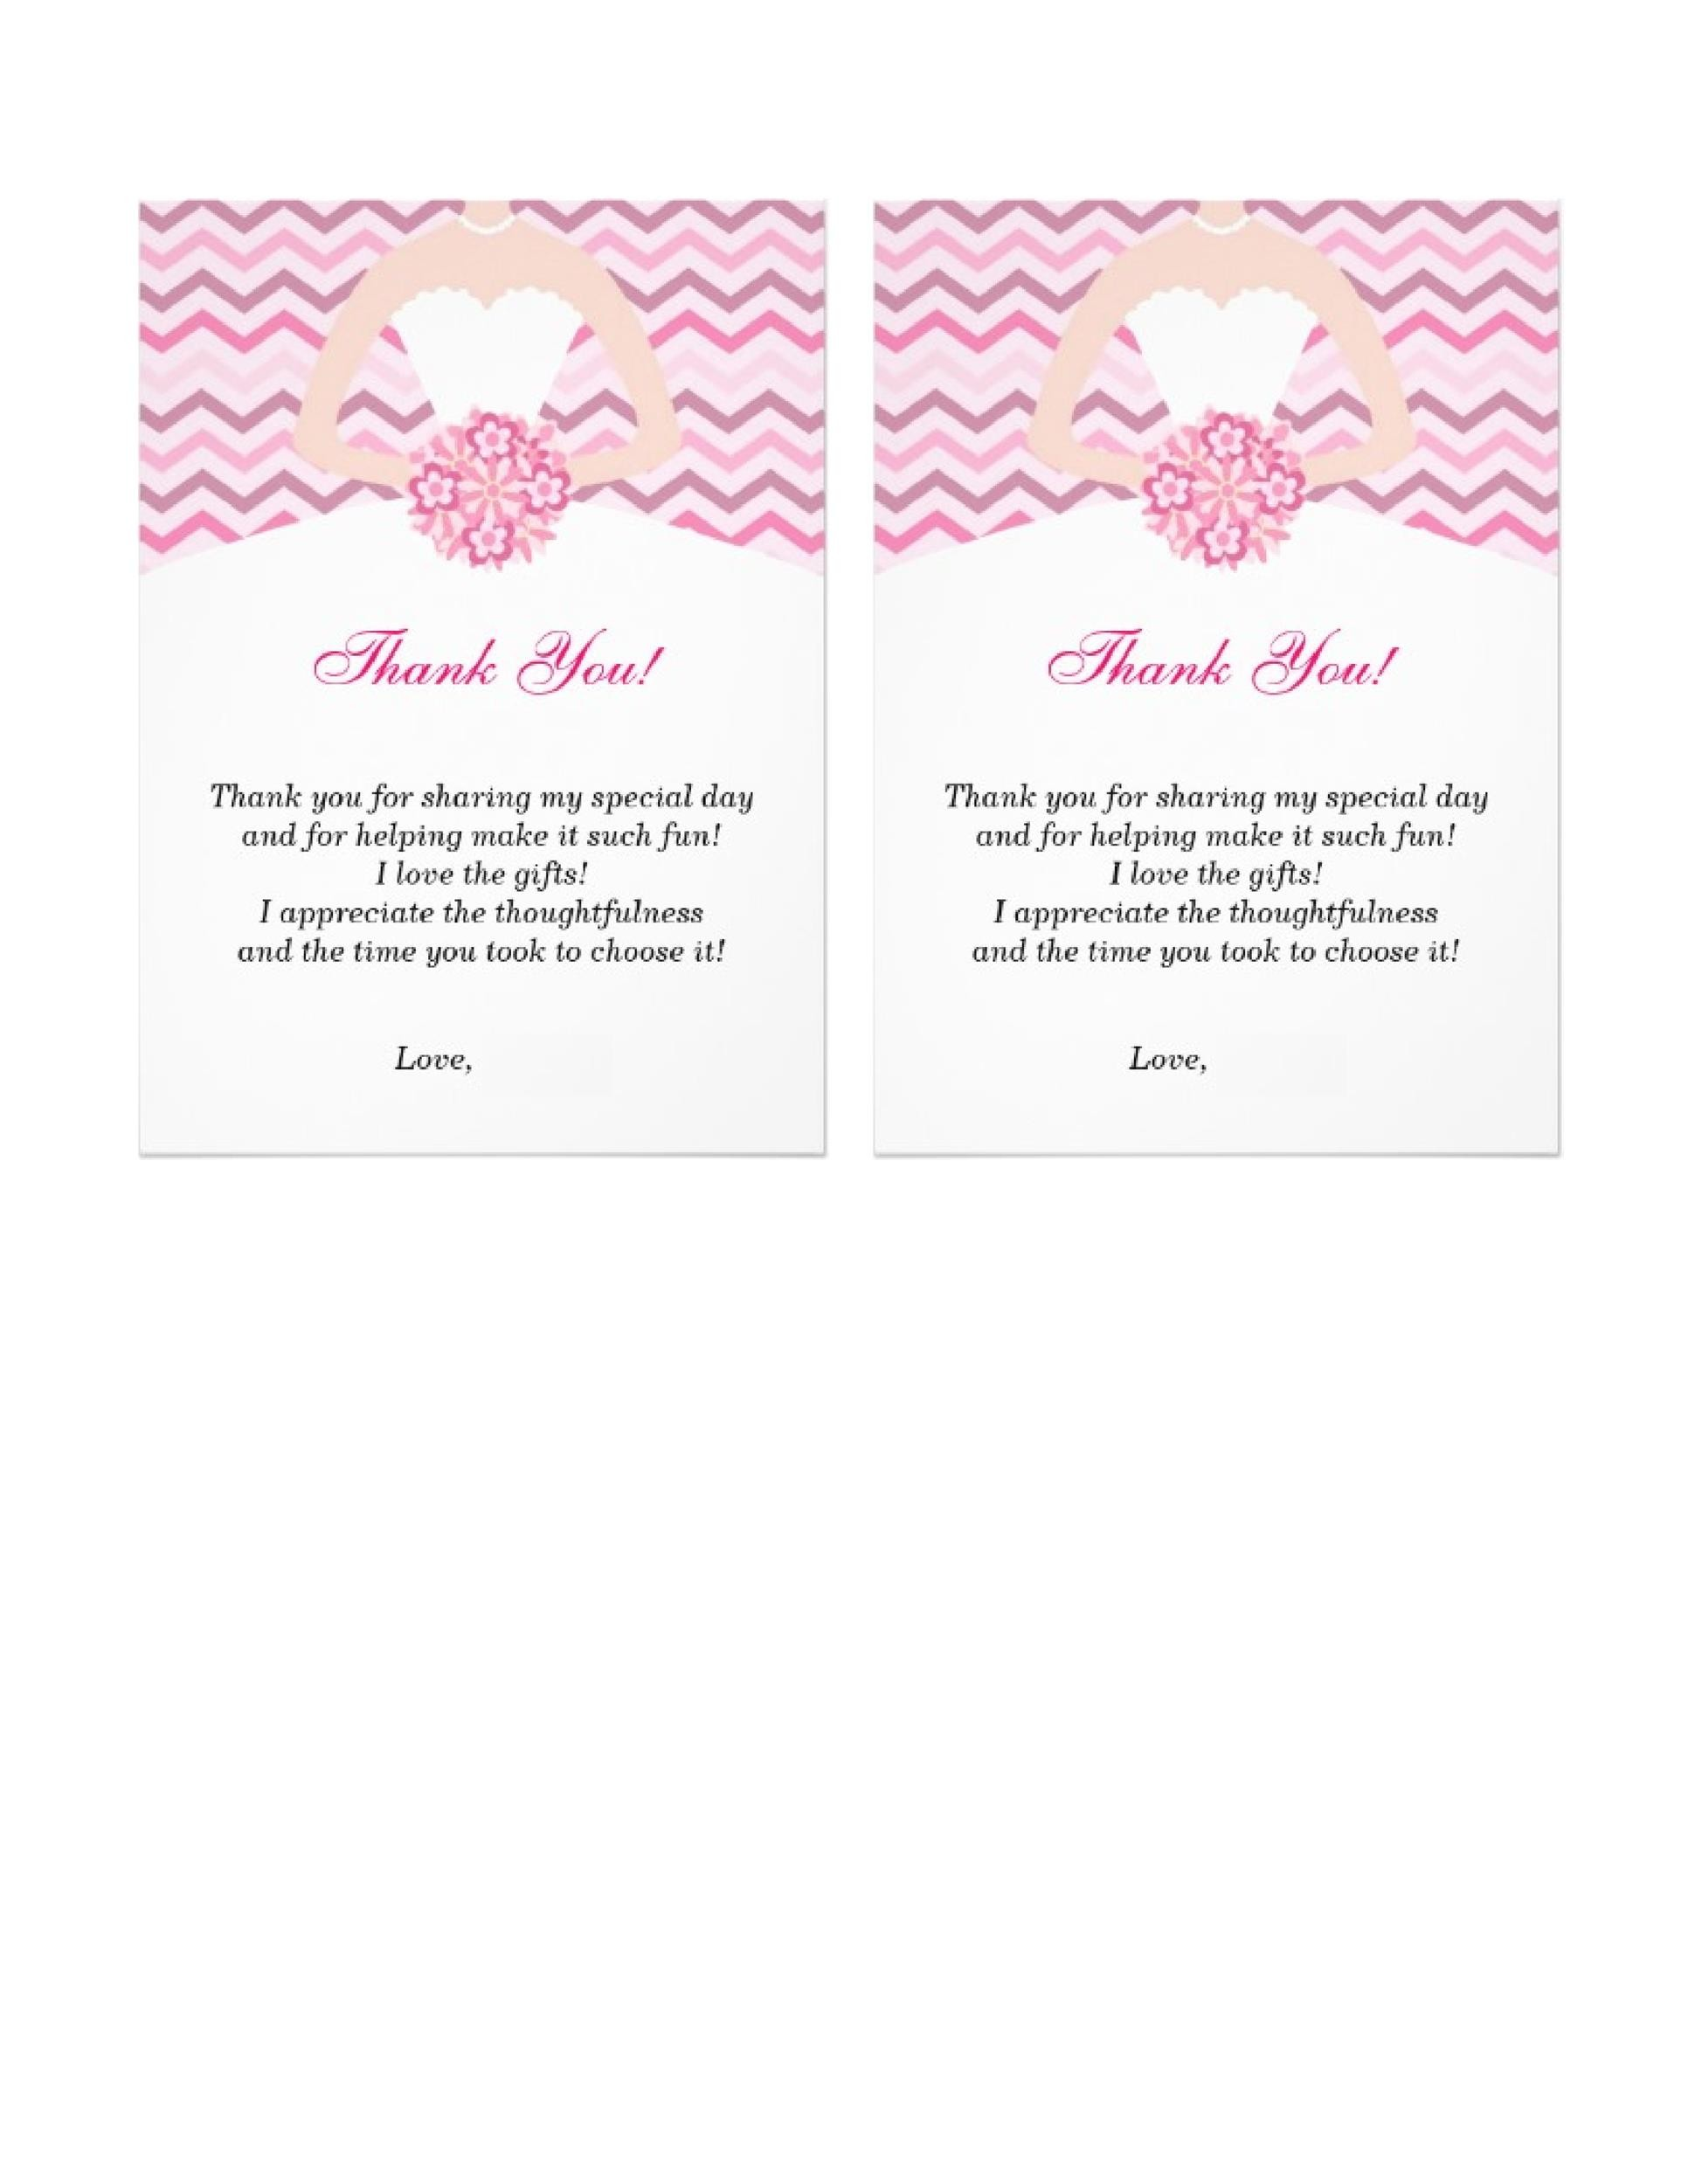 30+ Free Printable Thank You Card Templates (Wedding, Graduation - free thank you card template